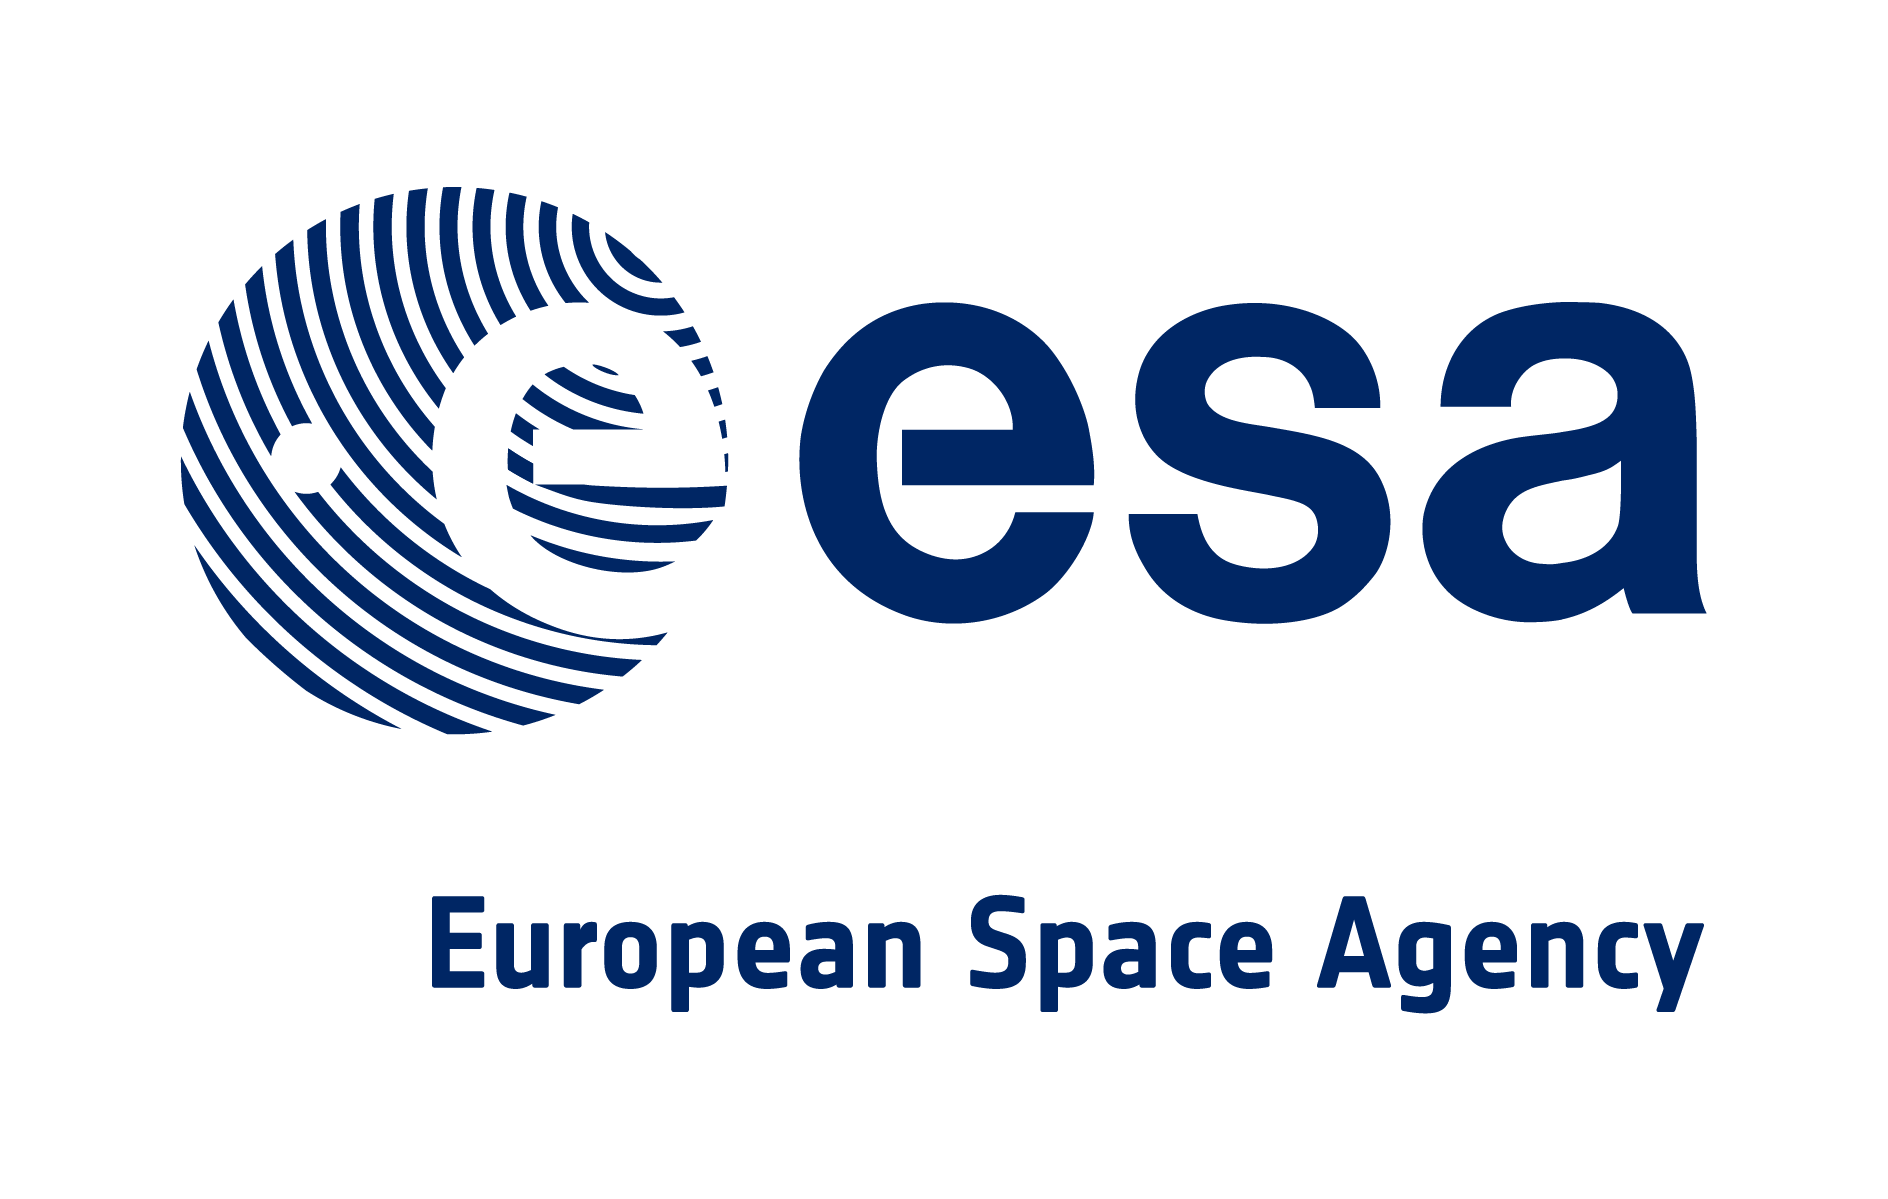 European-Space-Agency-logo.png